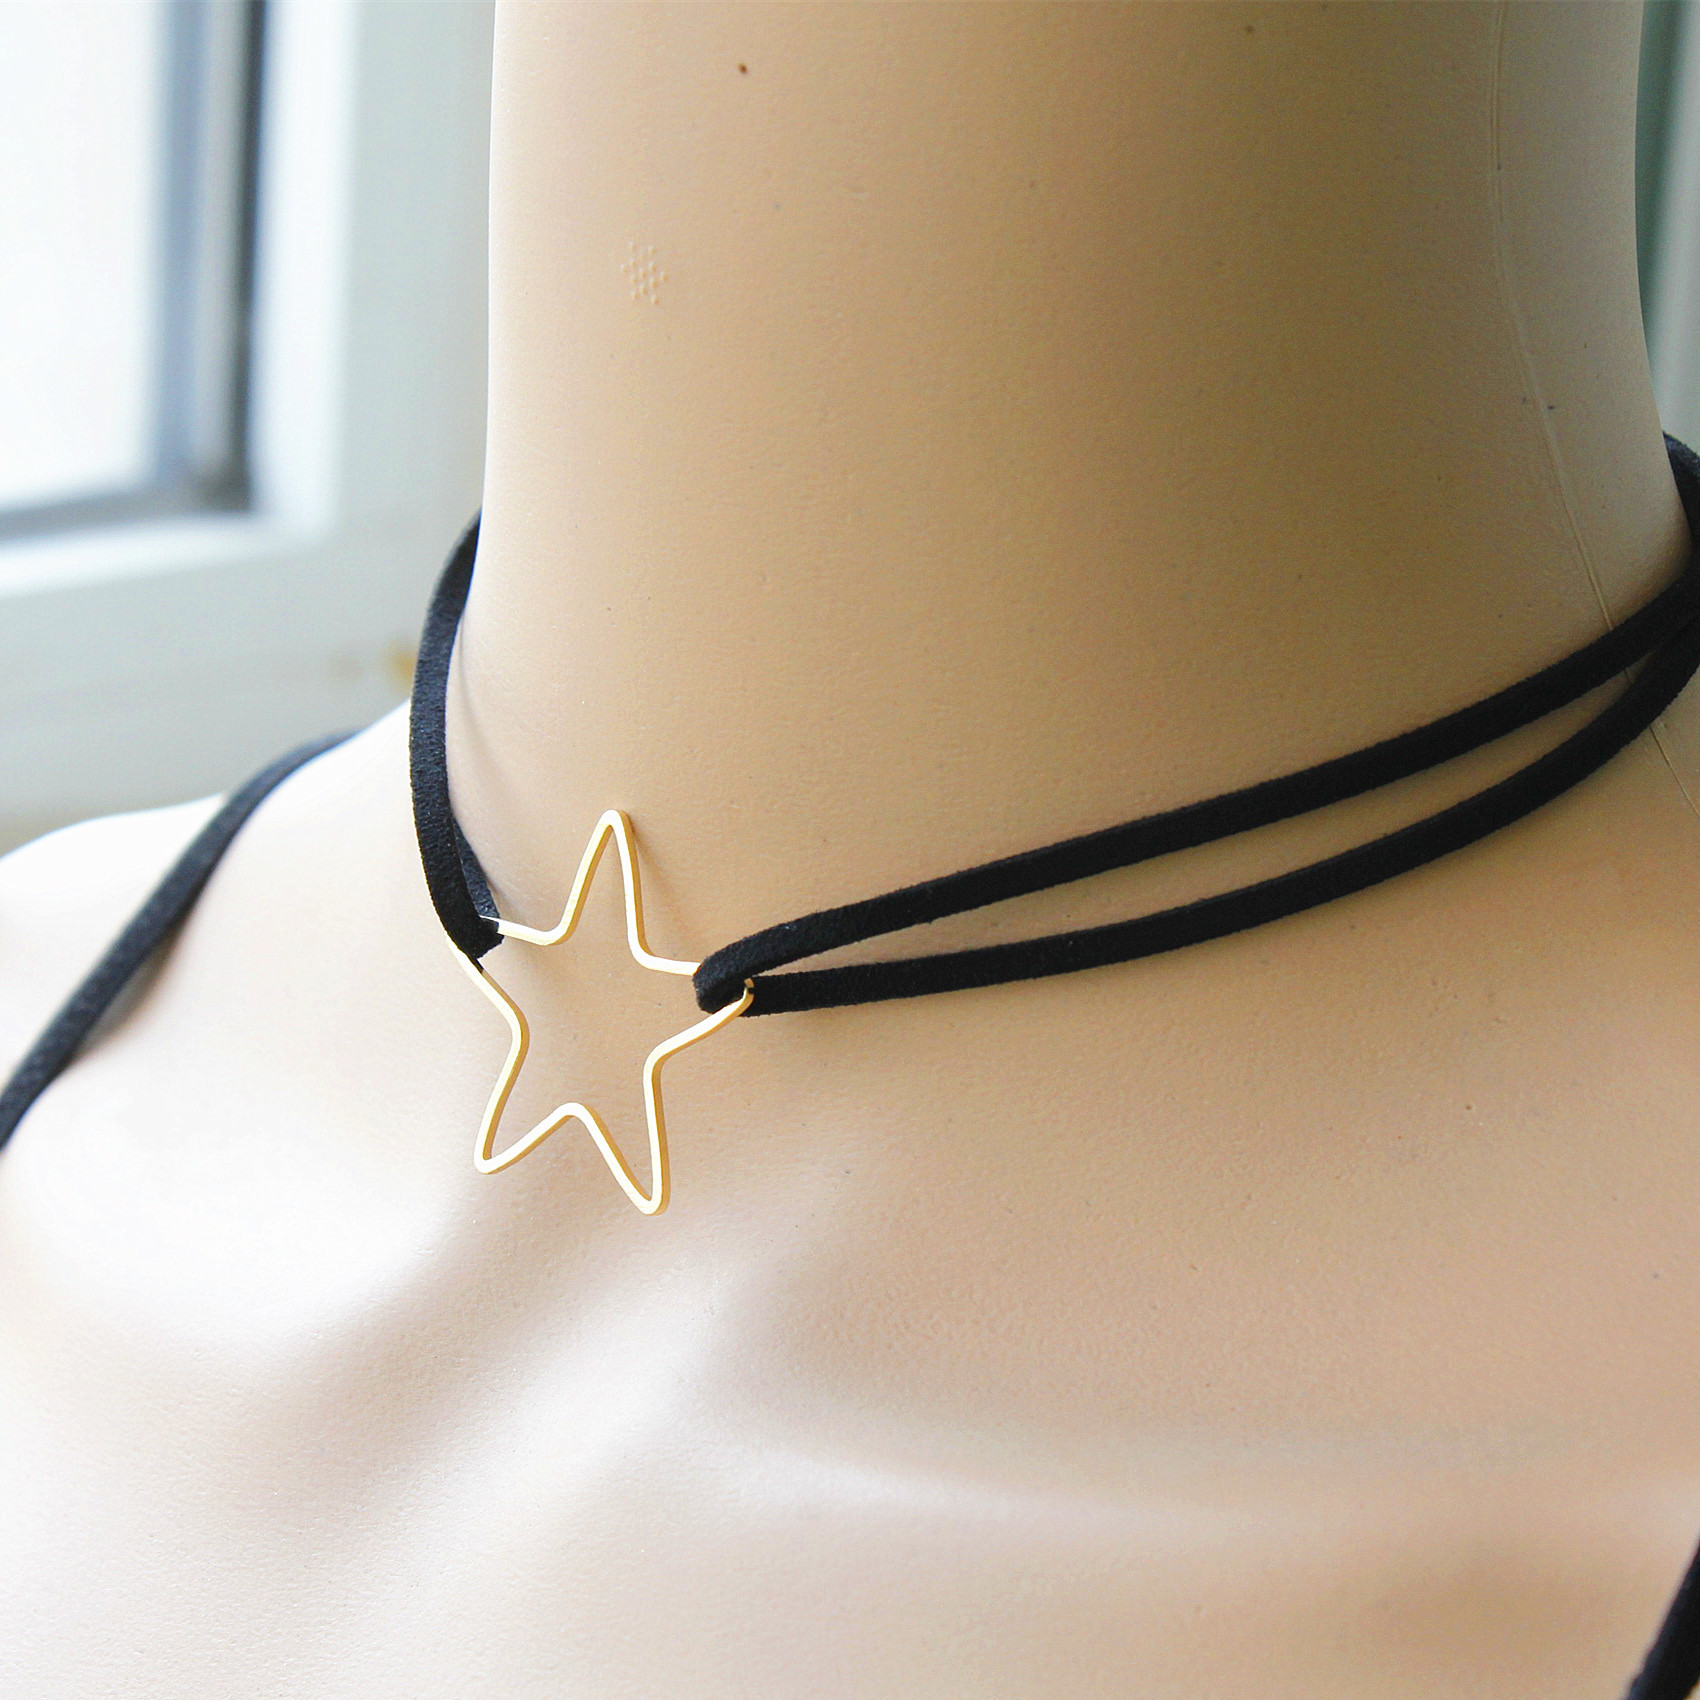 2017 New Fashion Jewelry Leather With Star 1 3 X1 3 Choker 13 Short Necklace Gift